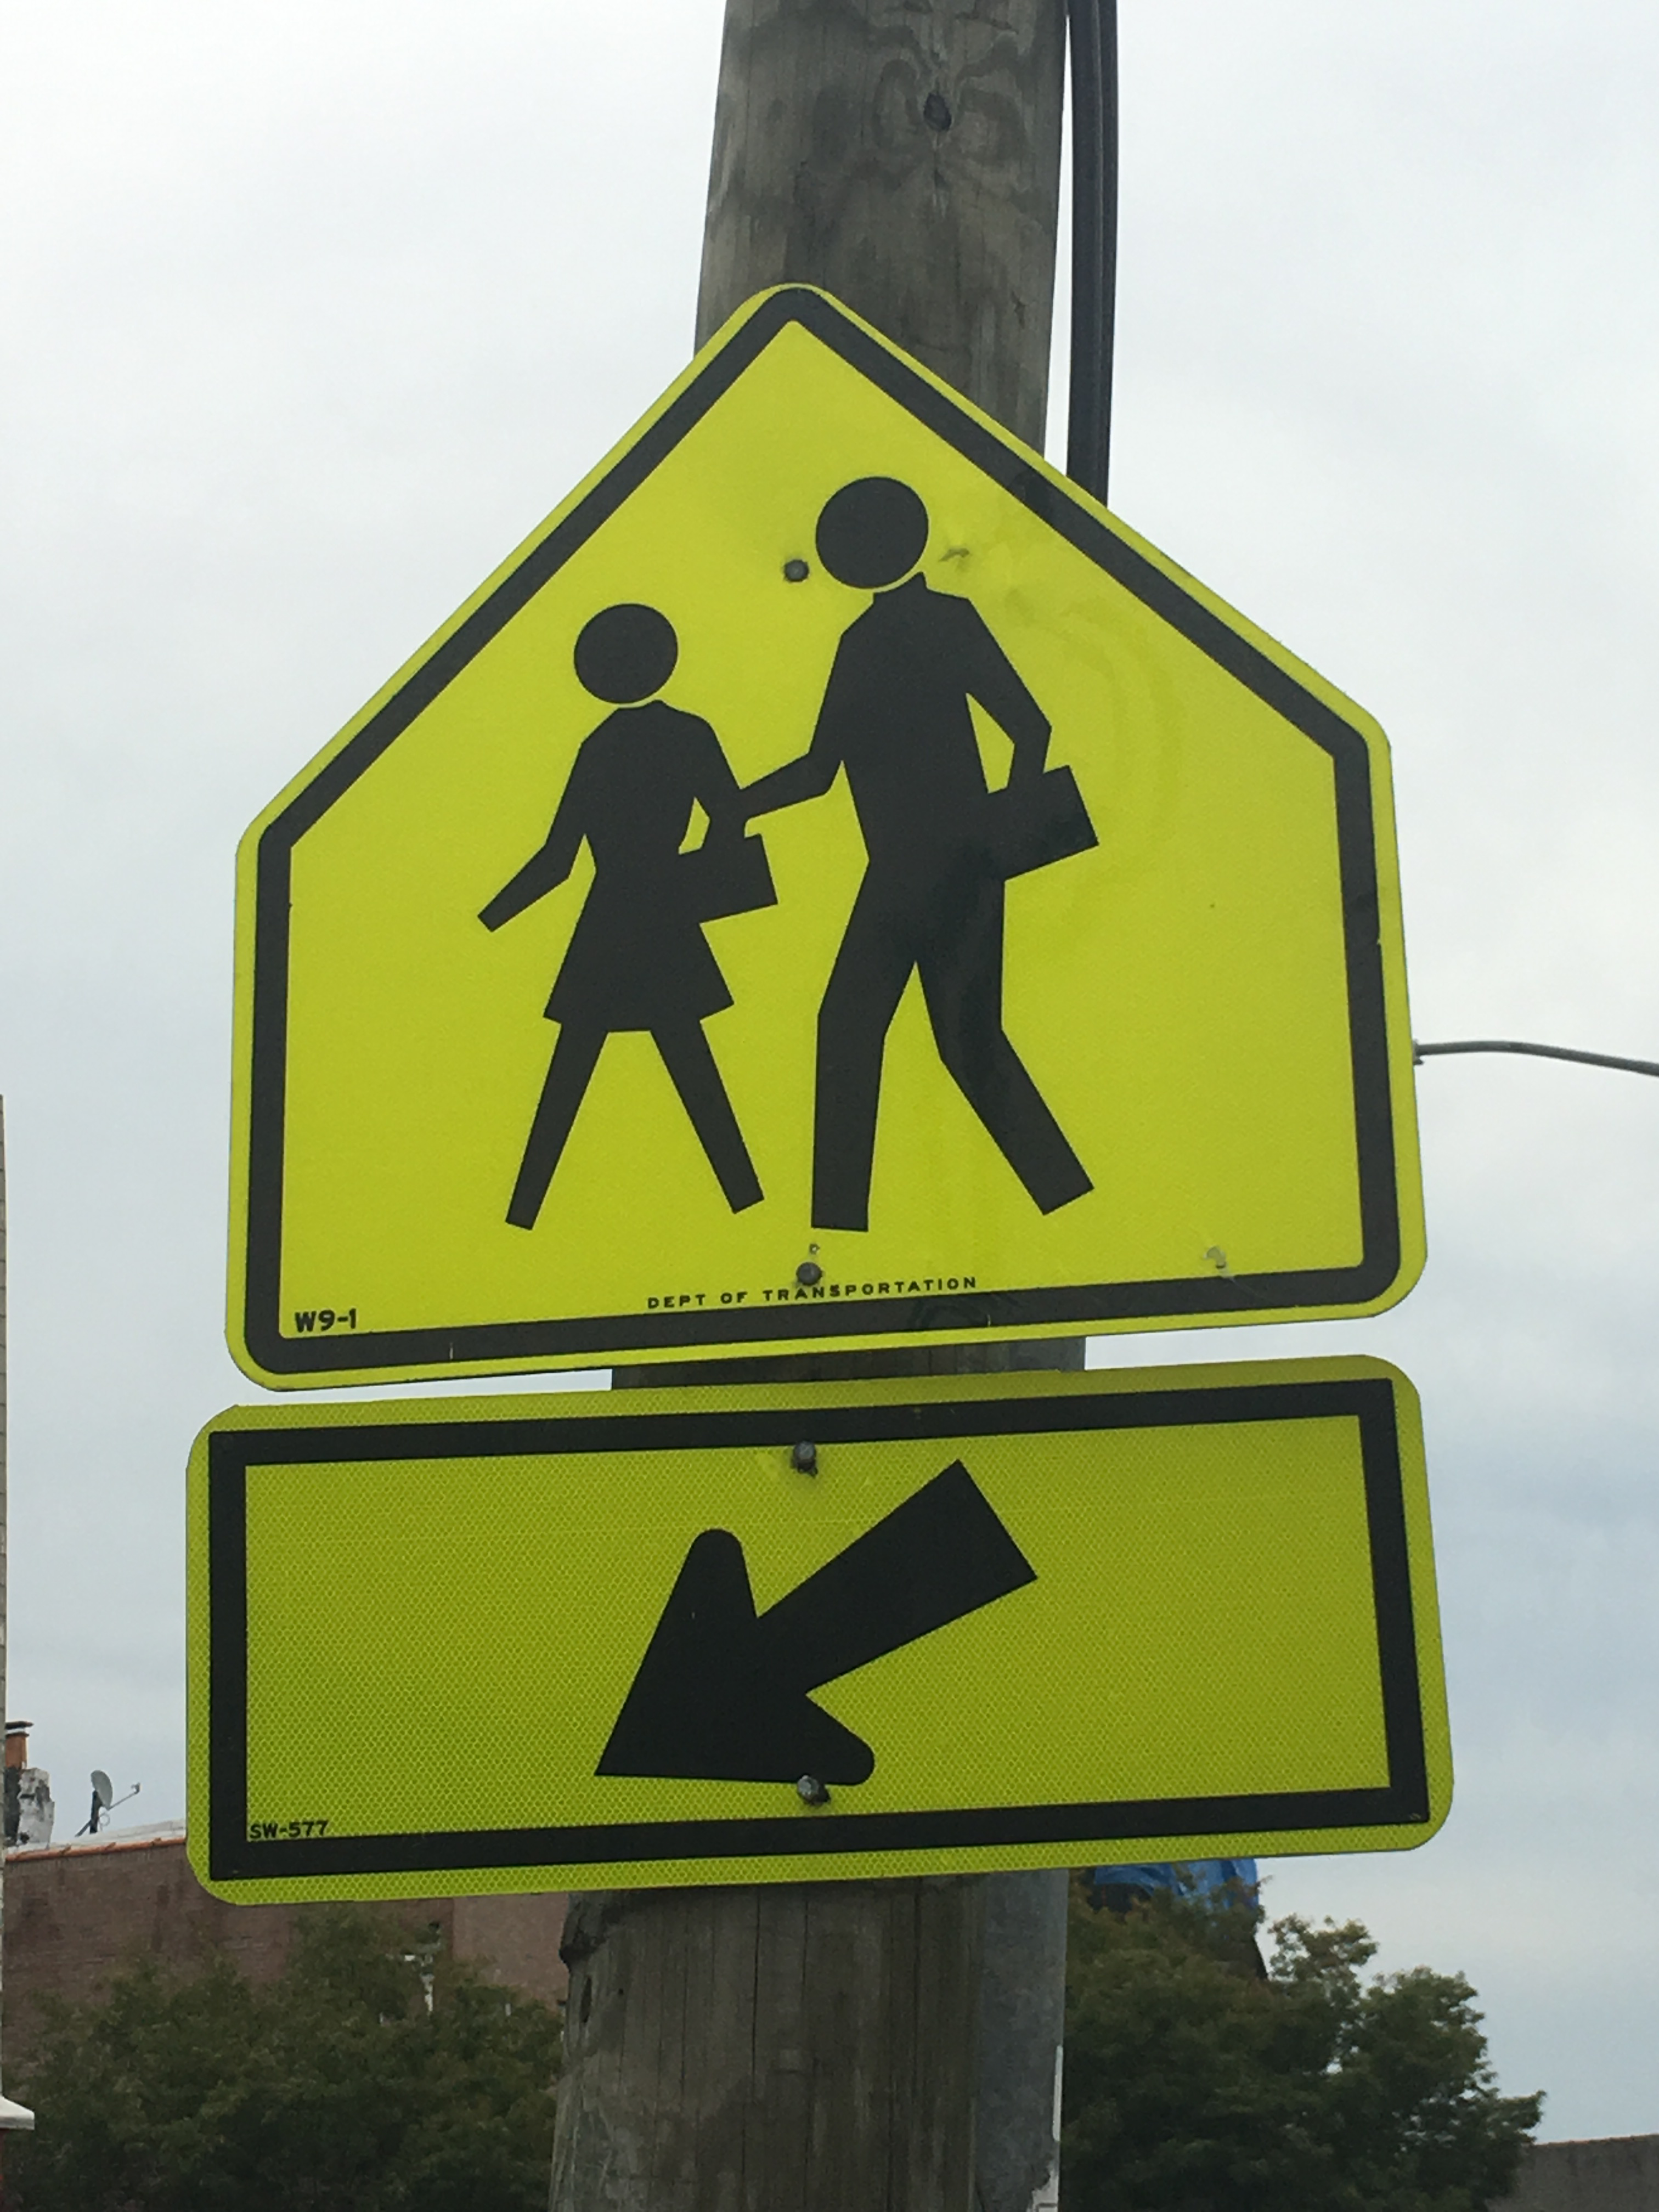 Student Crossing Here